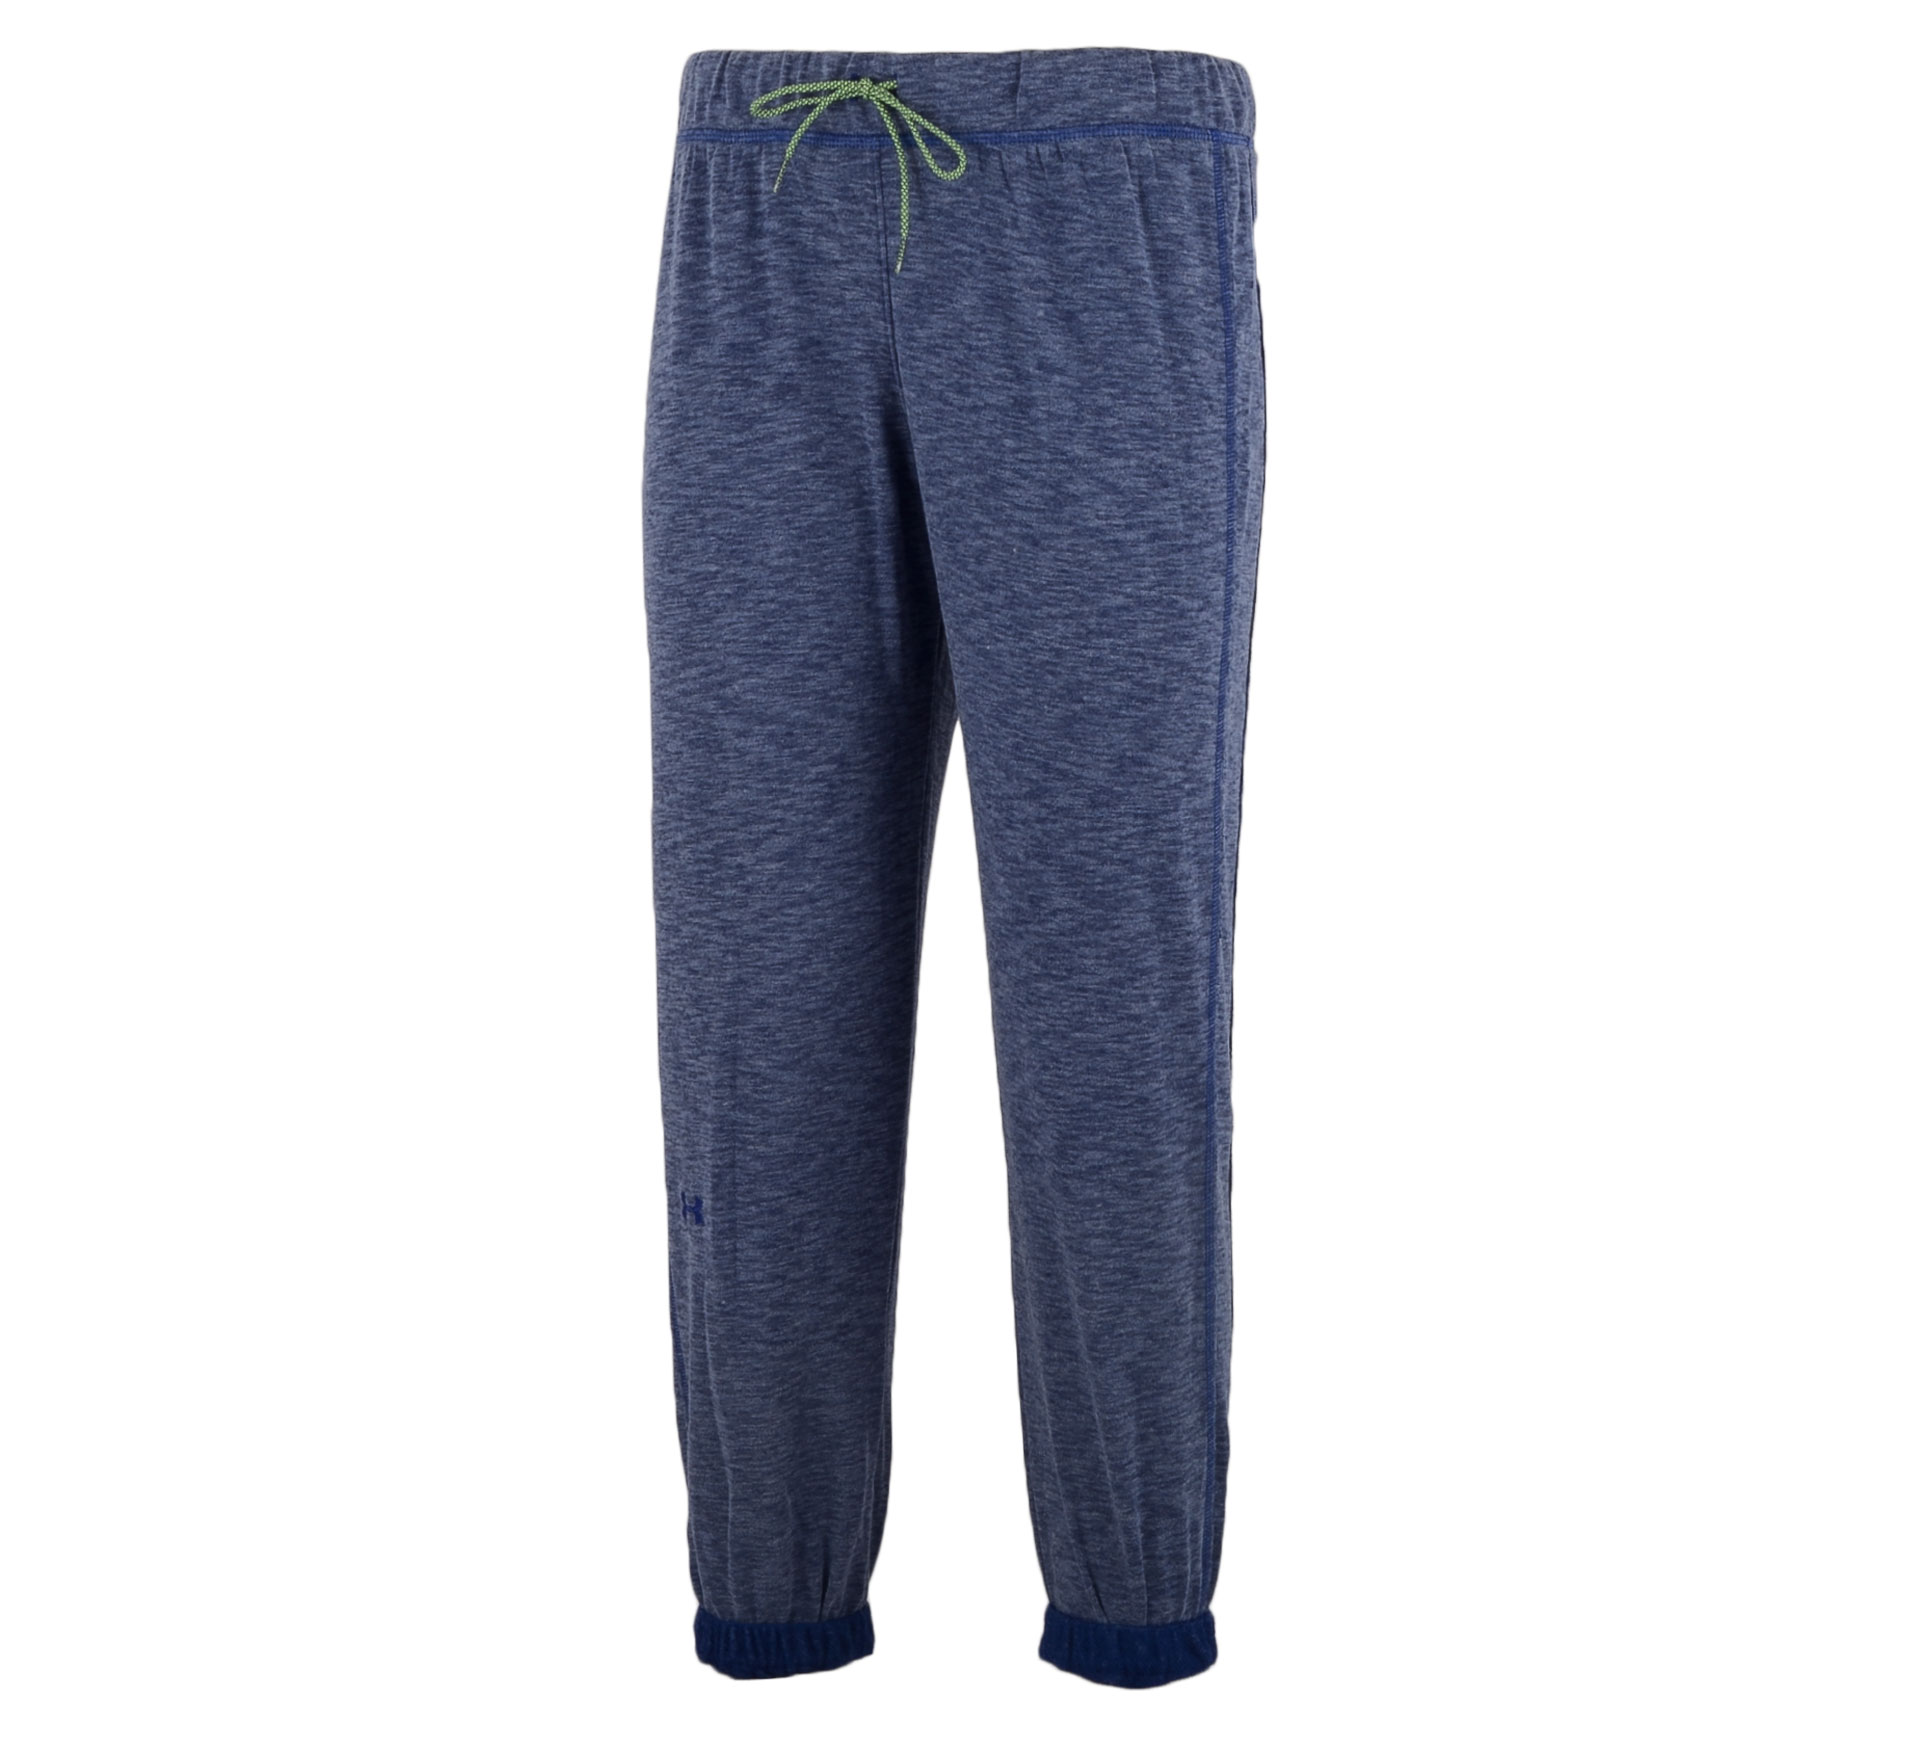 Under Armour Rollick 3/4 Joggingbroek Dames blauw